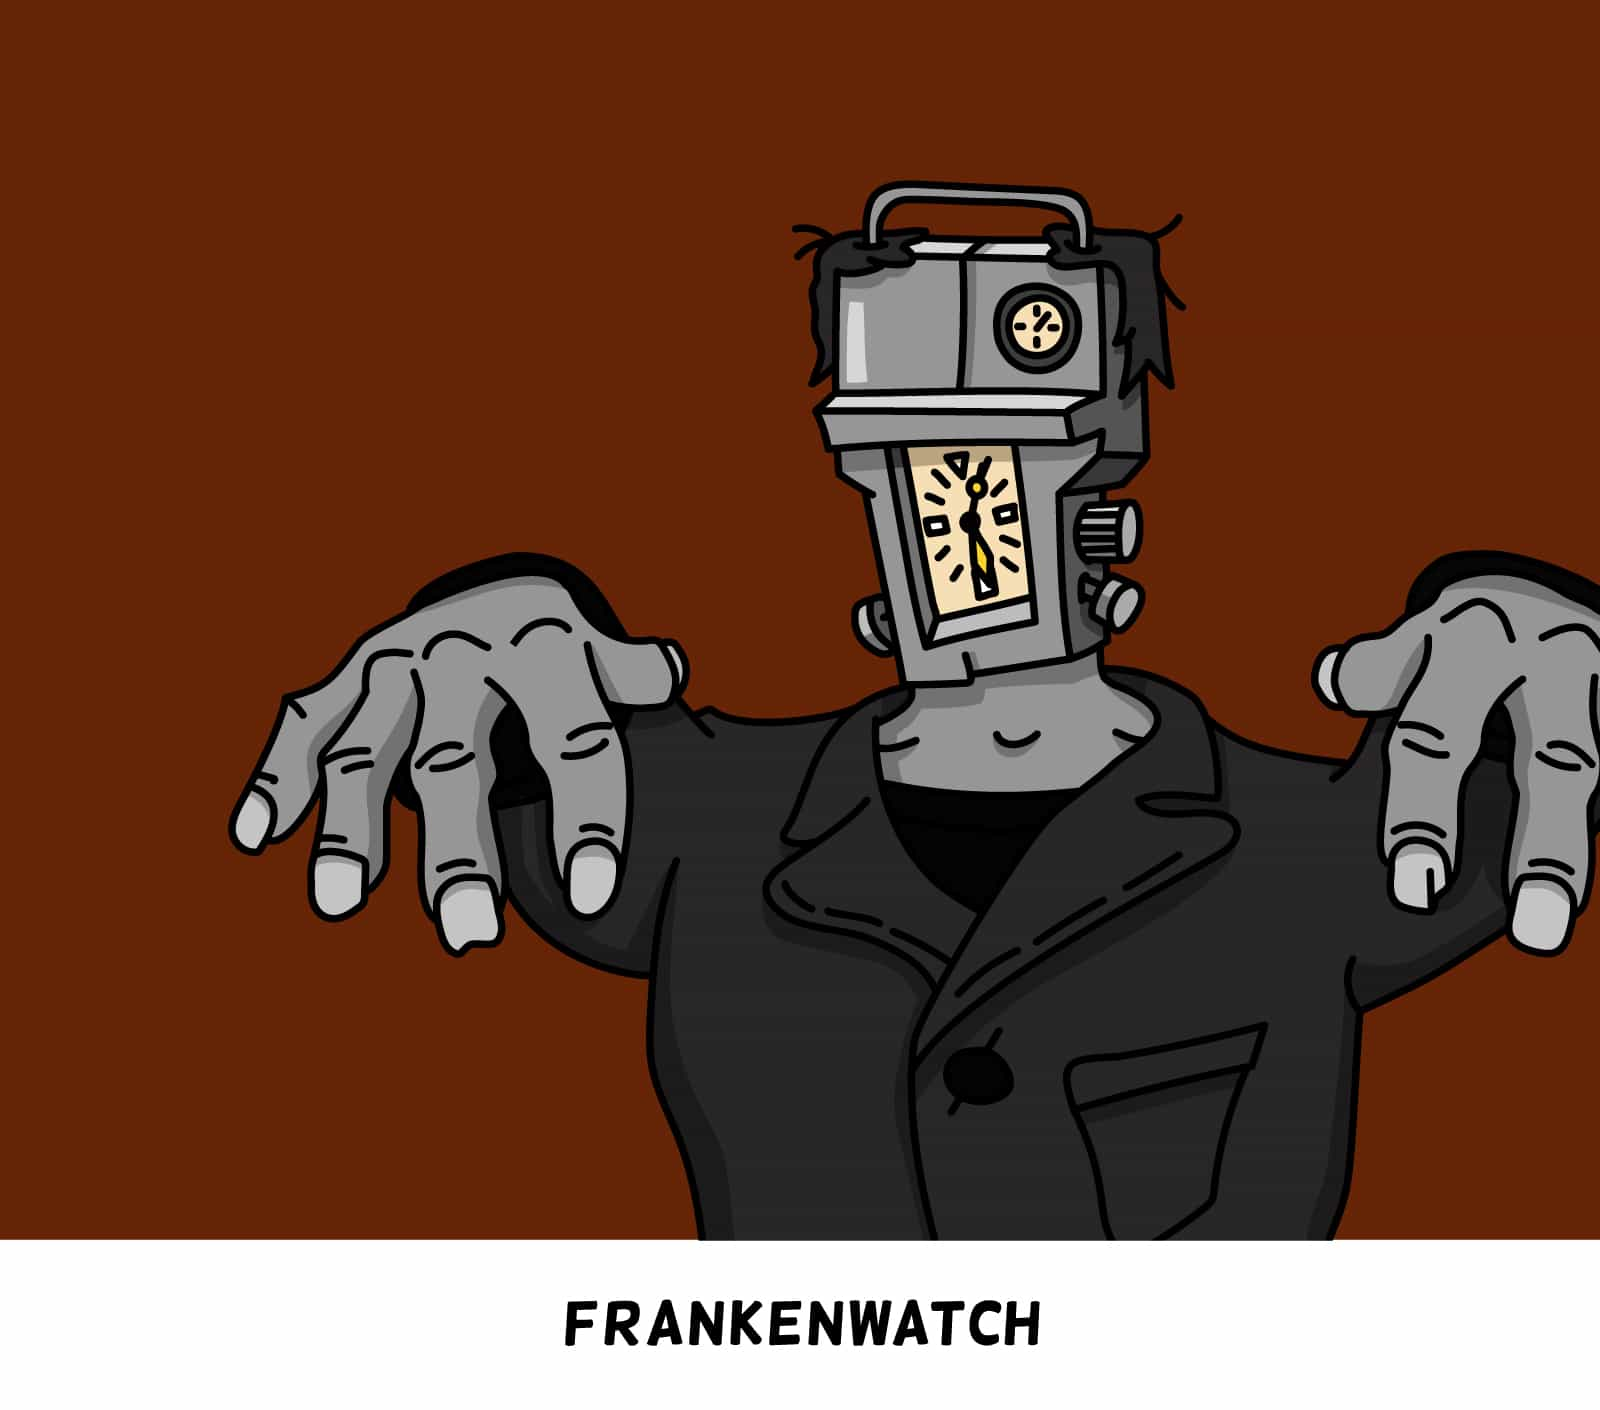 Frankenwatch